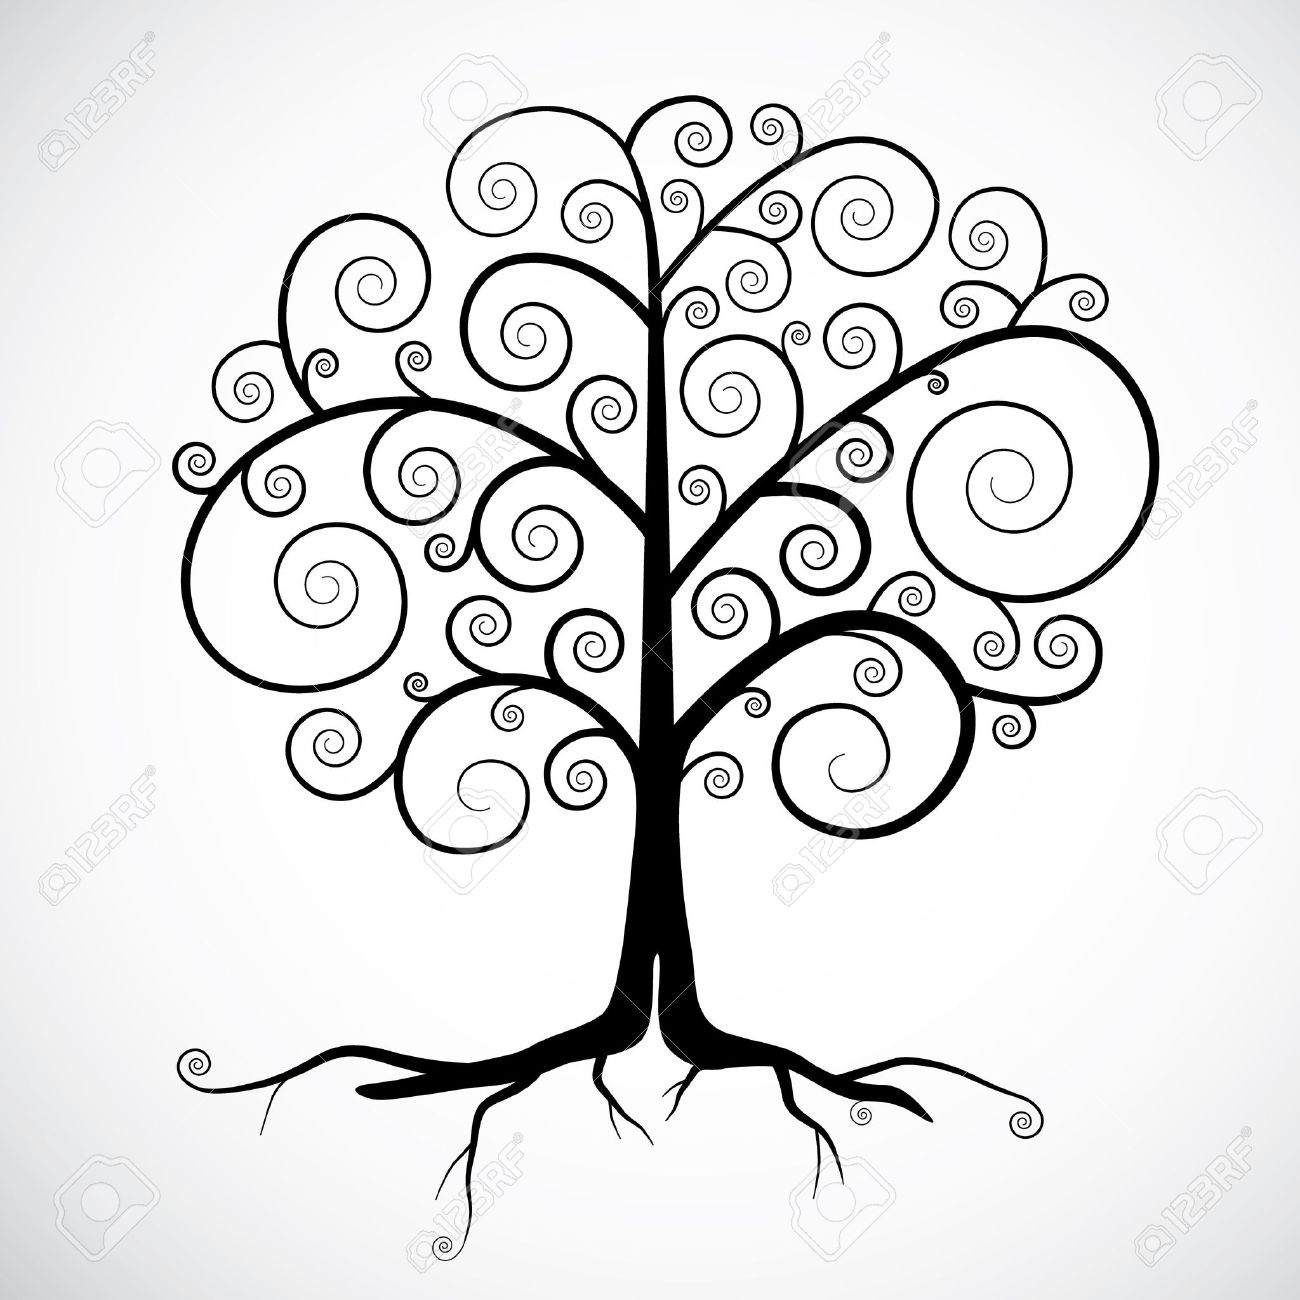 Abstract Vector Black Tree Illustration Isolated on Light Grey Background Stock Vector - 25305406